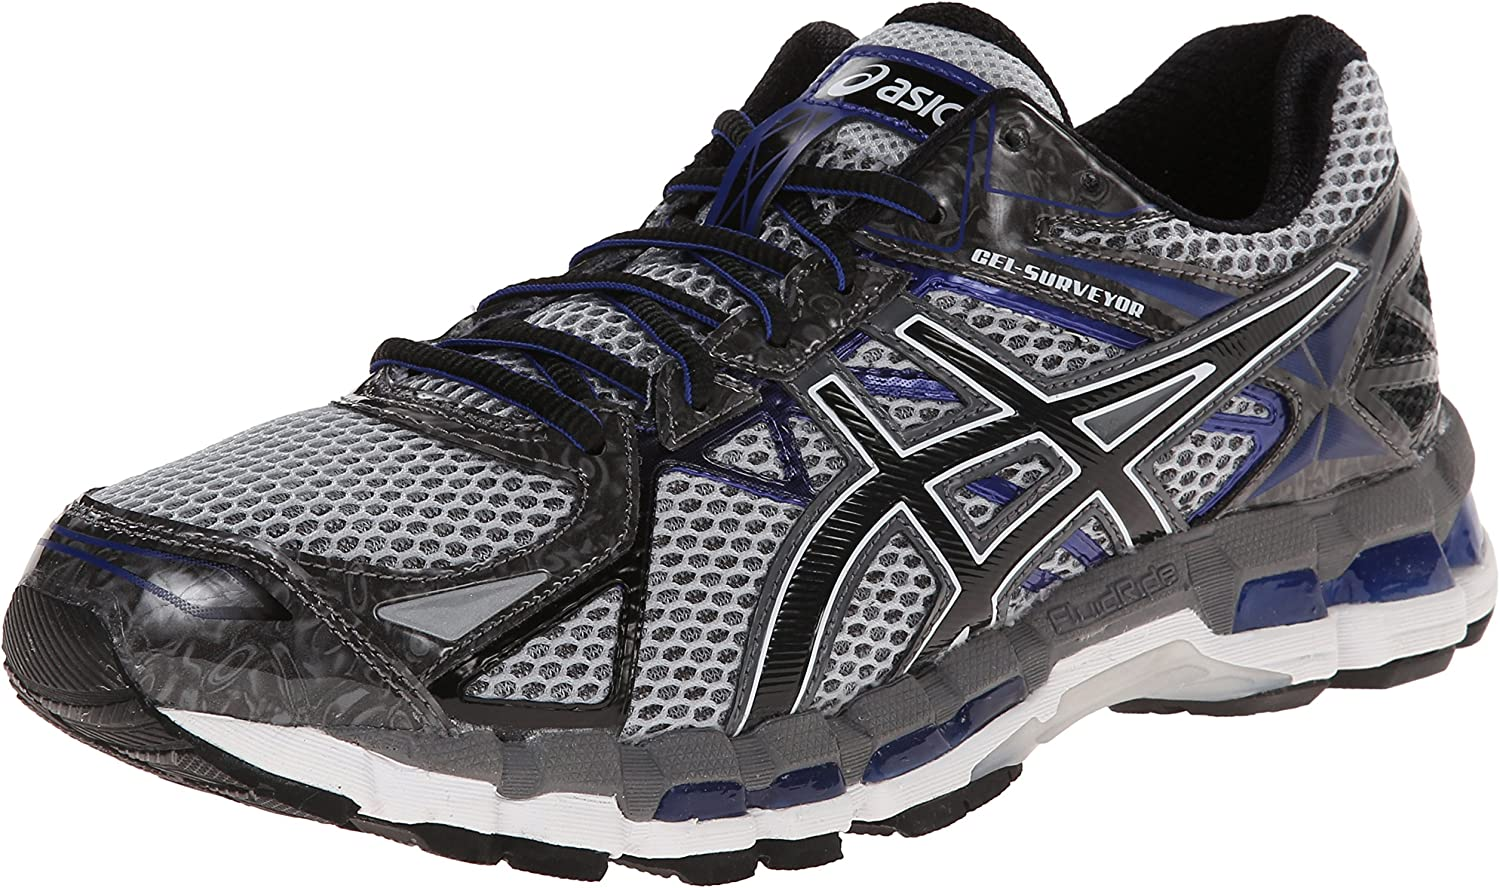 ASICS Men s GEL-Surveyor 3 Running Shoe